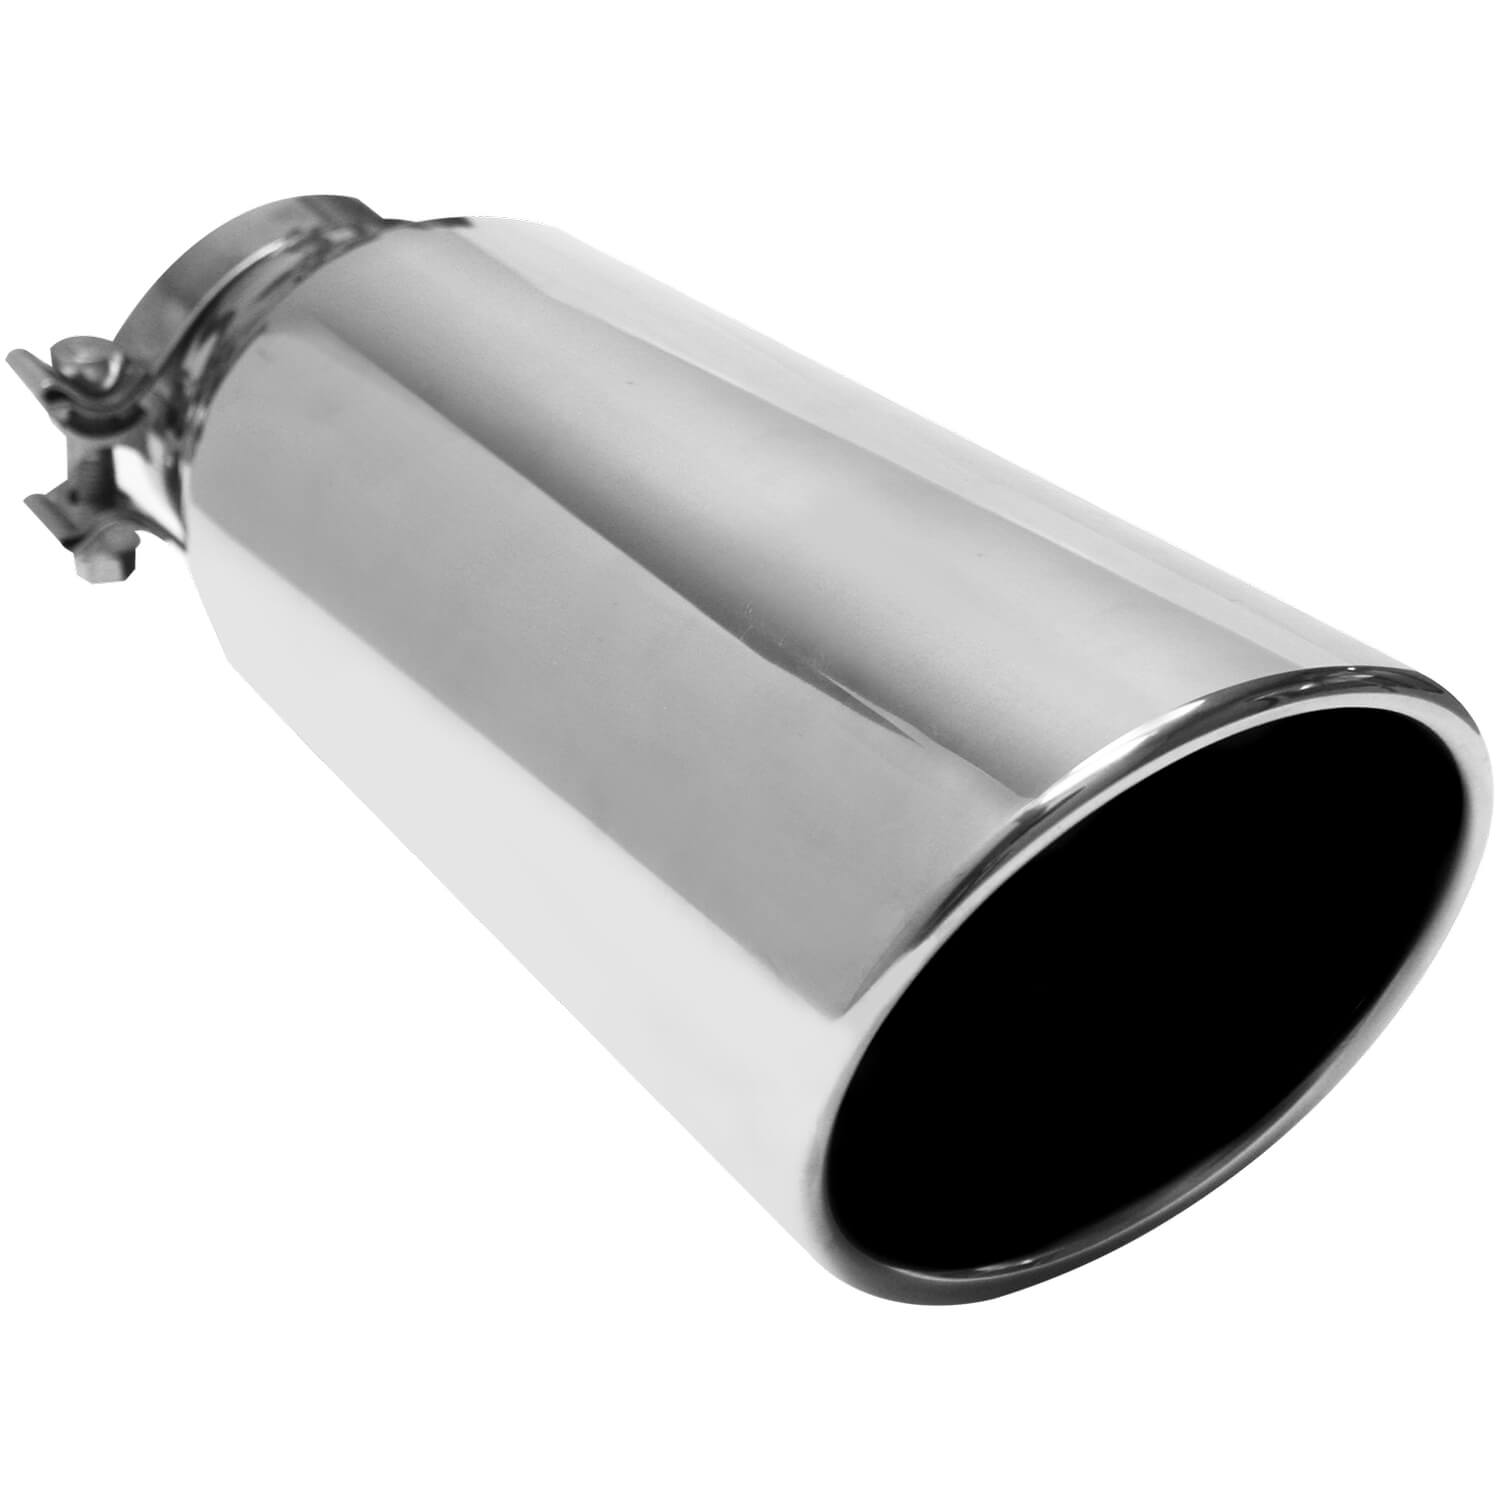 "Black stainless steel angle cut exhaust tip 2.25/"" inlet 5/"" outlet 18/"""